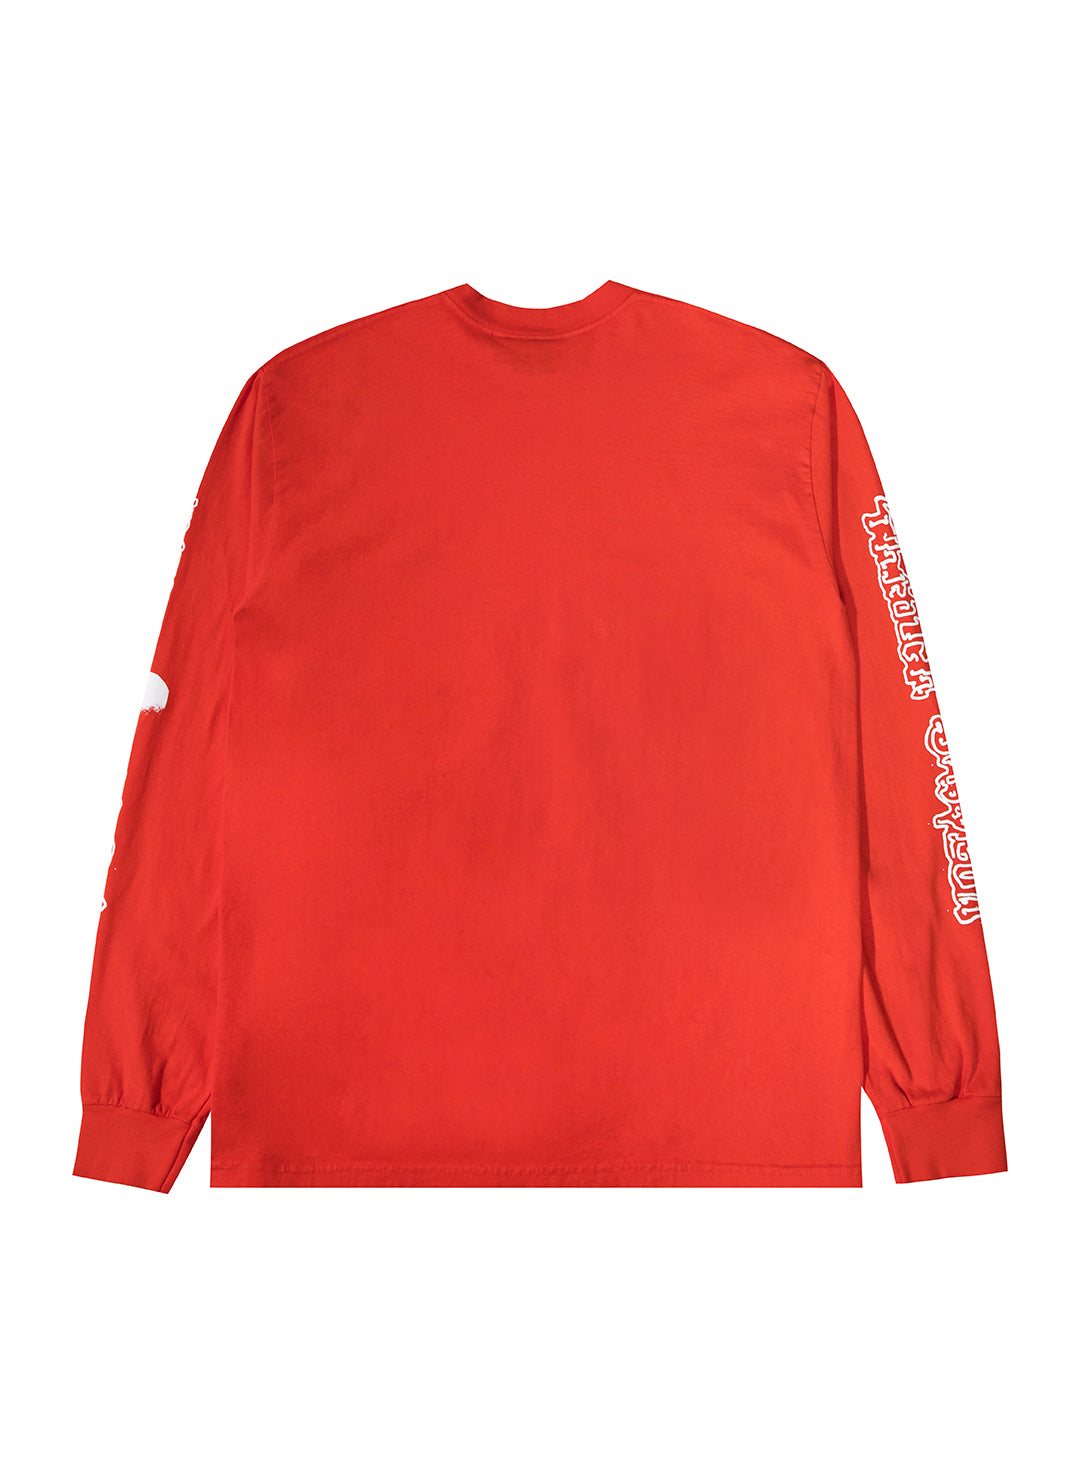 BETTER LIVING LONGSLEEVE